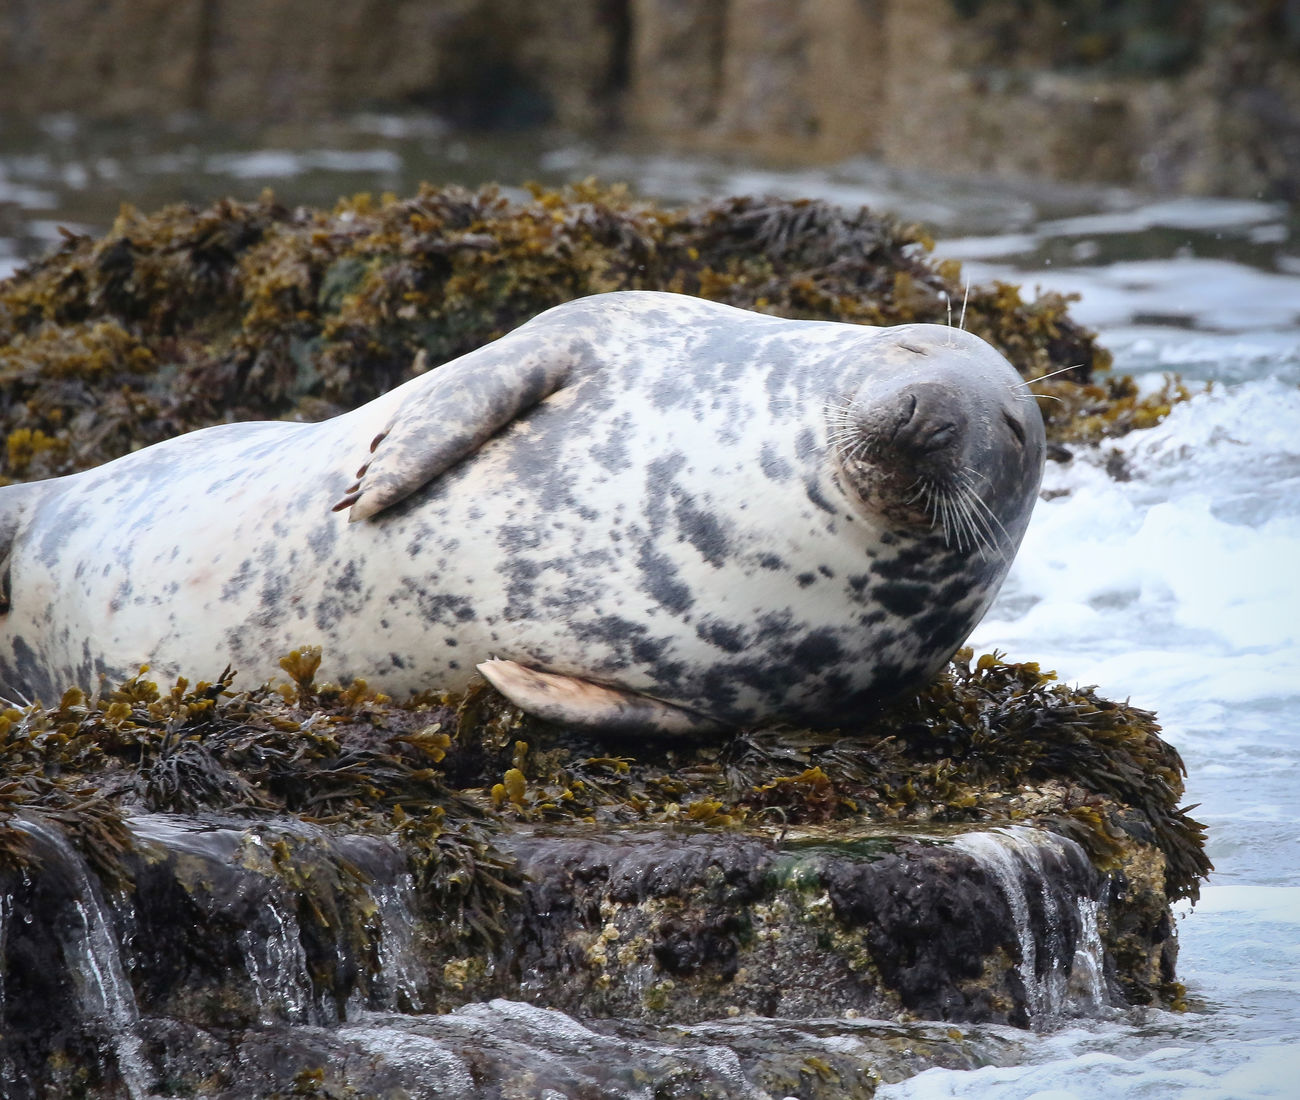 Grey Seal in the Farne Islands Animal Themes Animal Wildlife Animals In The Wild Aquatic Mammal Beauty In Nature Close-up Day Full Length Mammal Nature No People One Animal Outdoors Relaxation Rock - Object Sea Sea Life Sea Lion Seal Seal - Animal Water